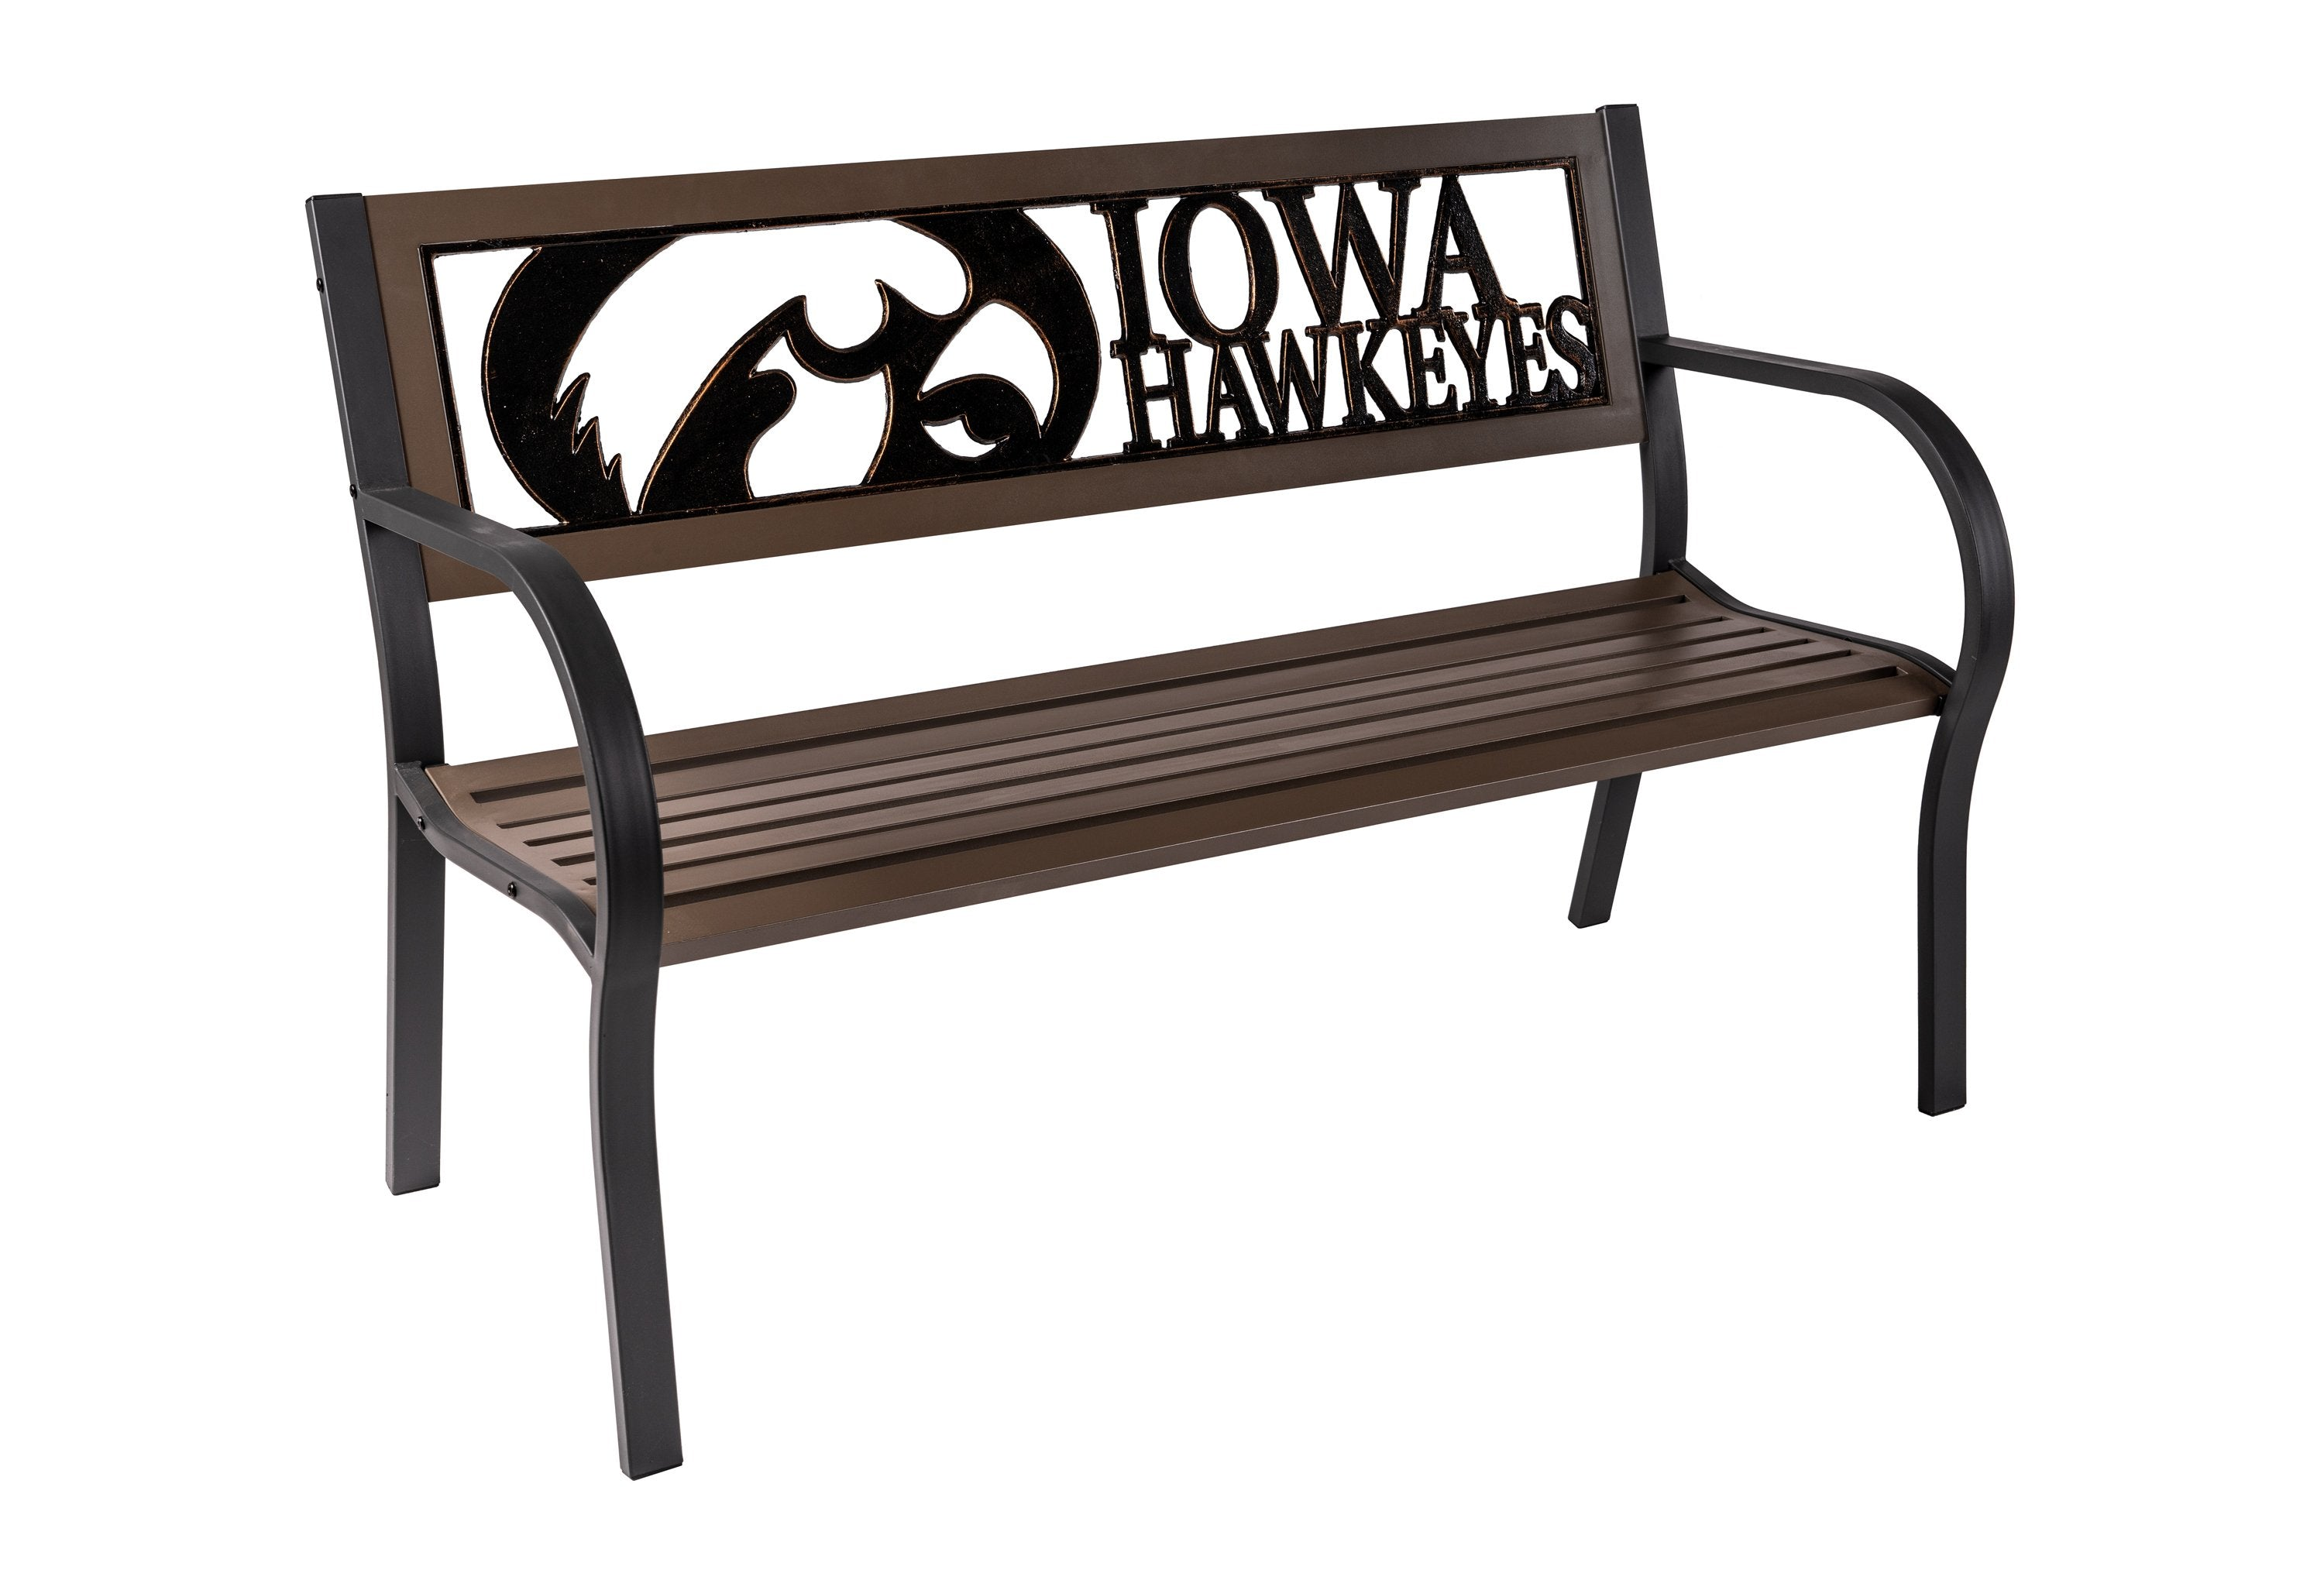 Iowa Hawkeye Bench